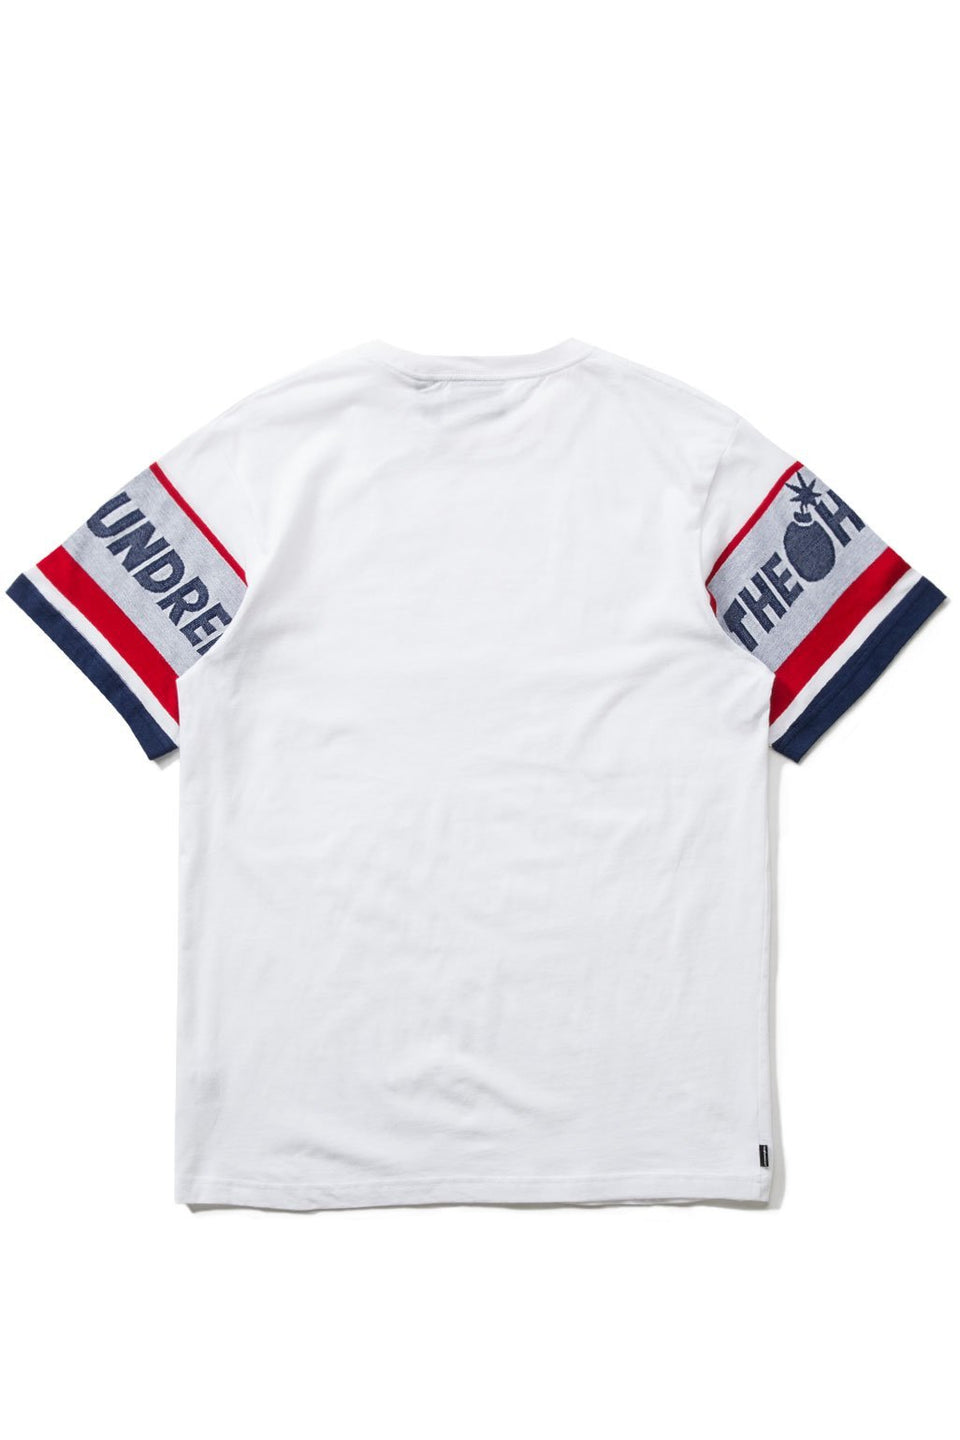 Boarder T-Shirt-TOPS-The Hundreds UK